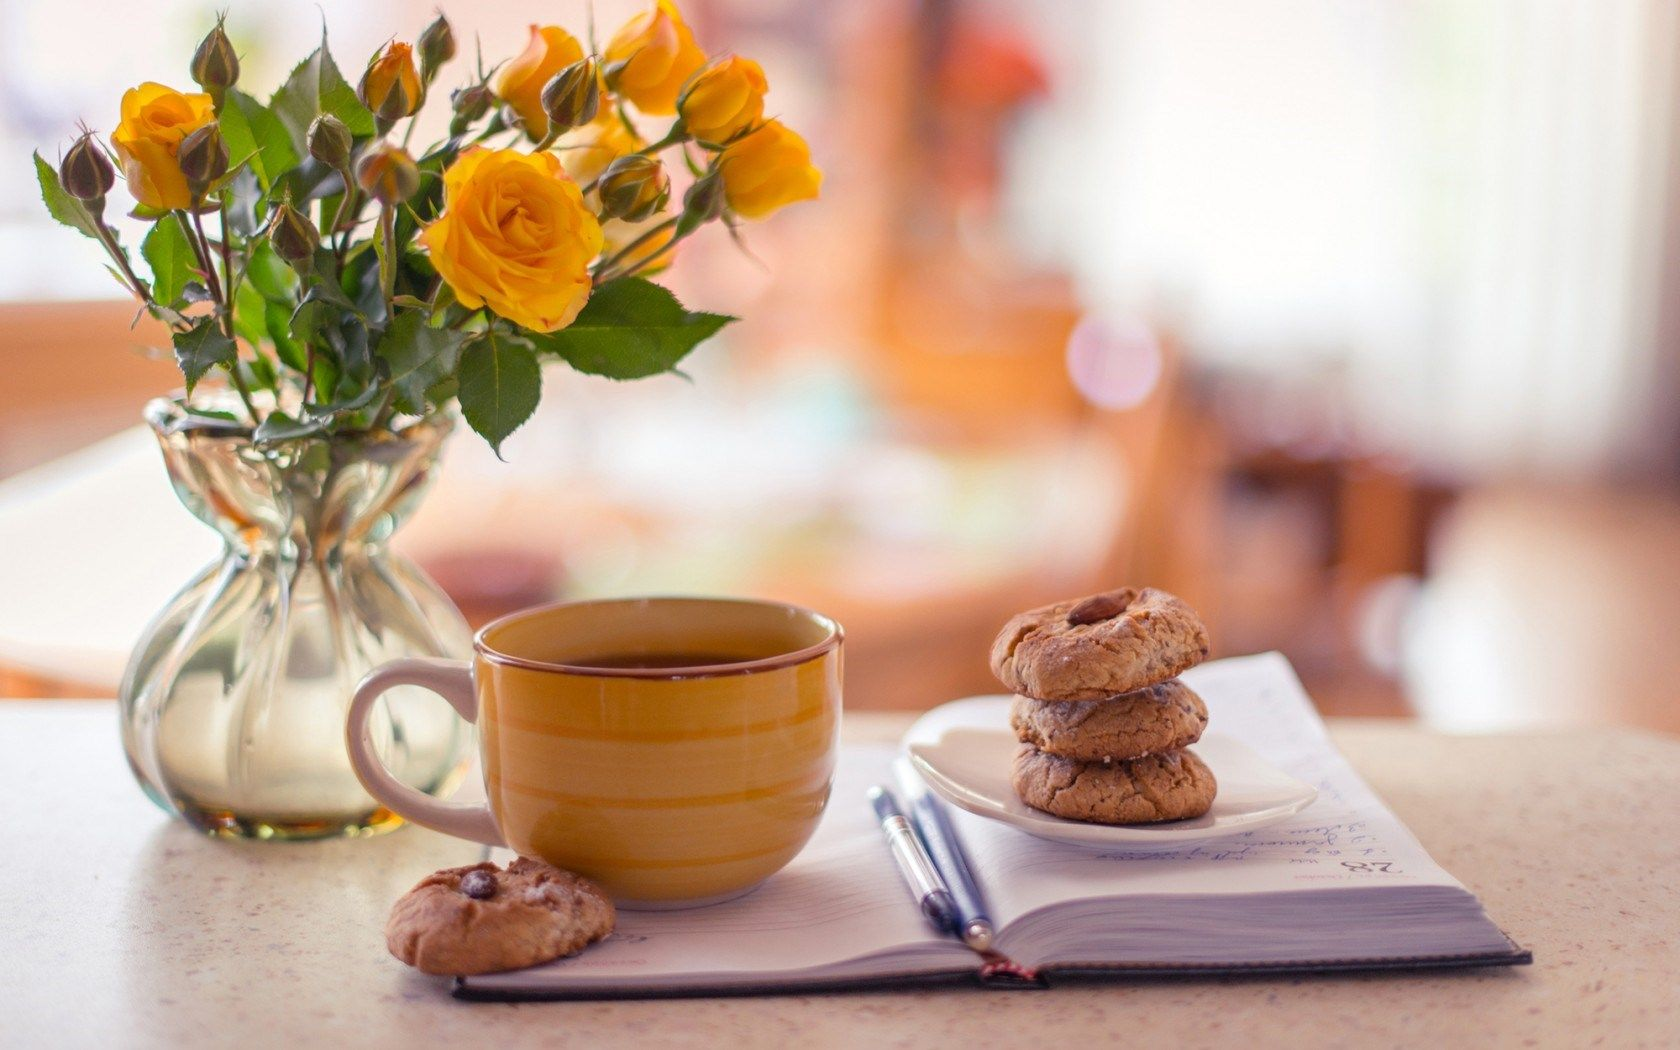 Biscuits Yellow Roses Open Notepad Tea Cup HD Wallpaper